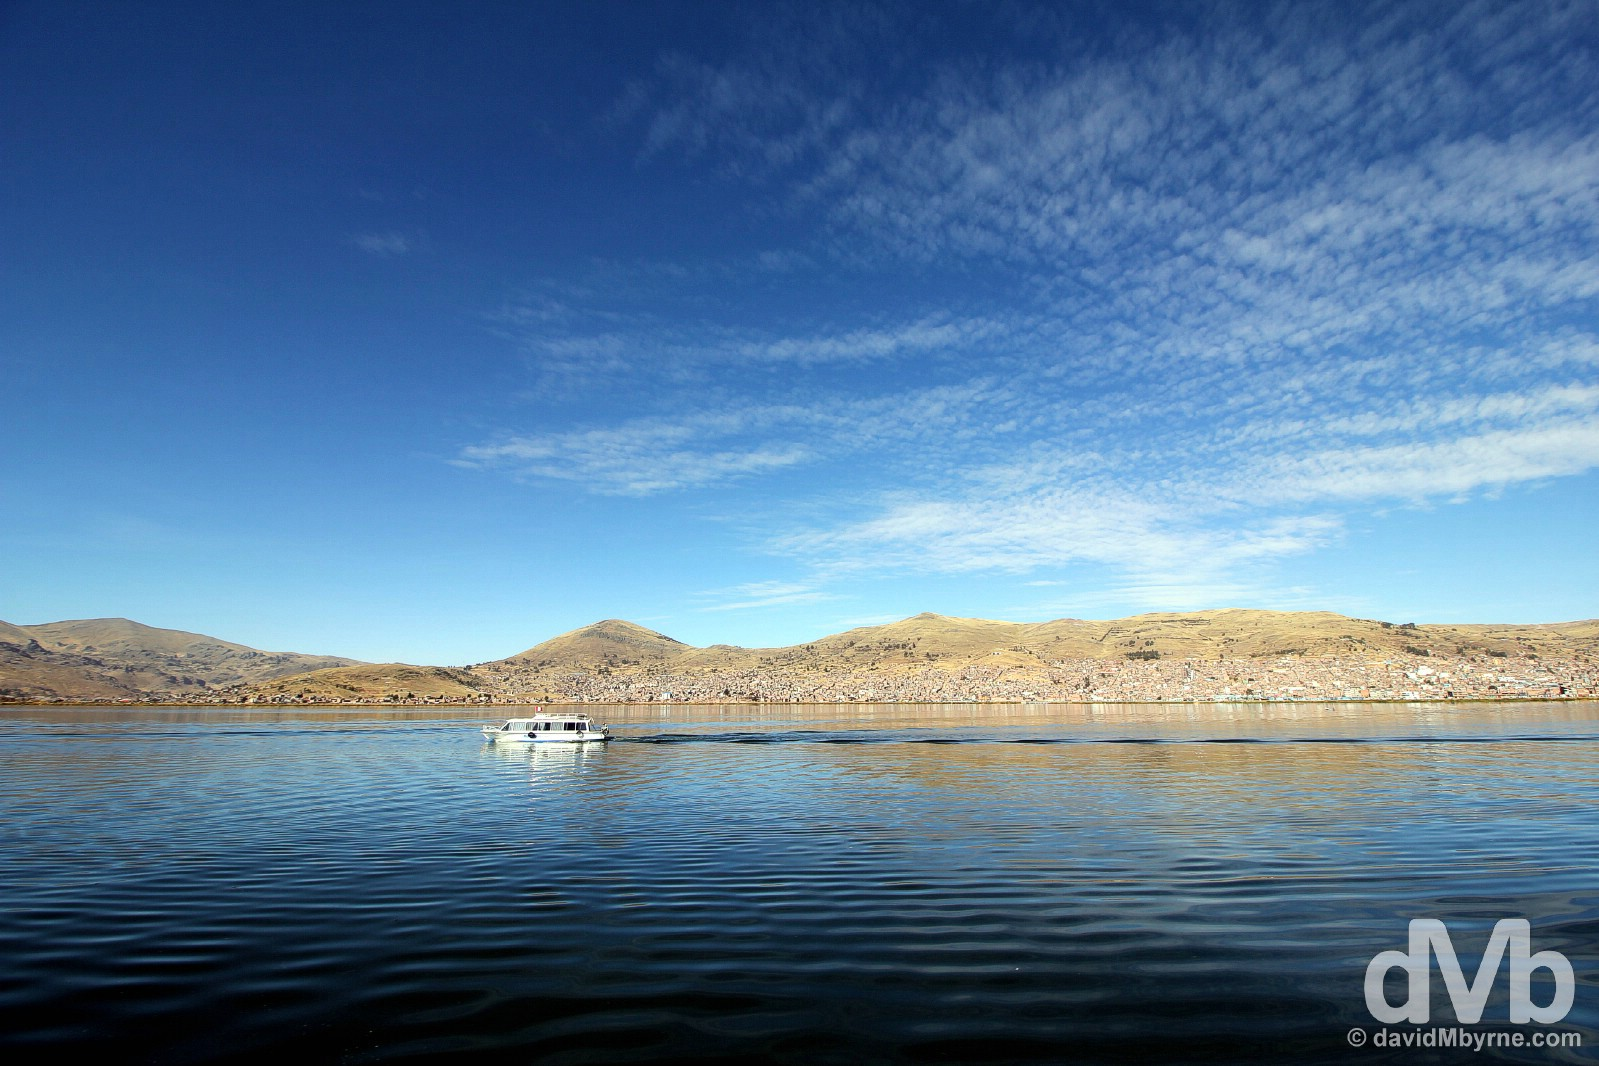 Boating on Lake Titicaca outside Puno, Peru. August 20, 2015.